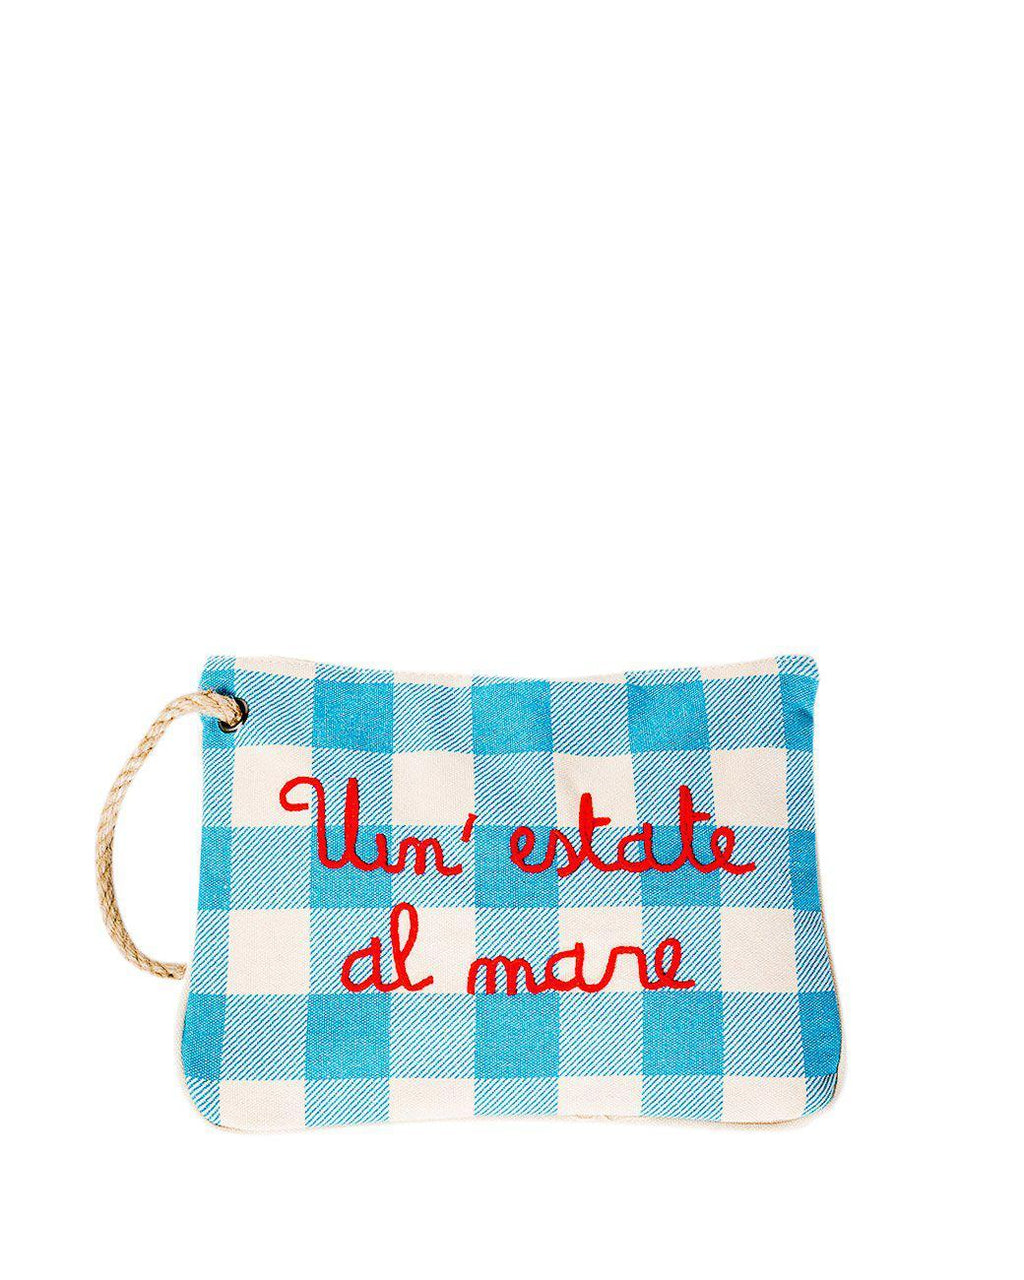 CHECK PATTERN CLUTCH BAG